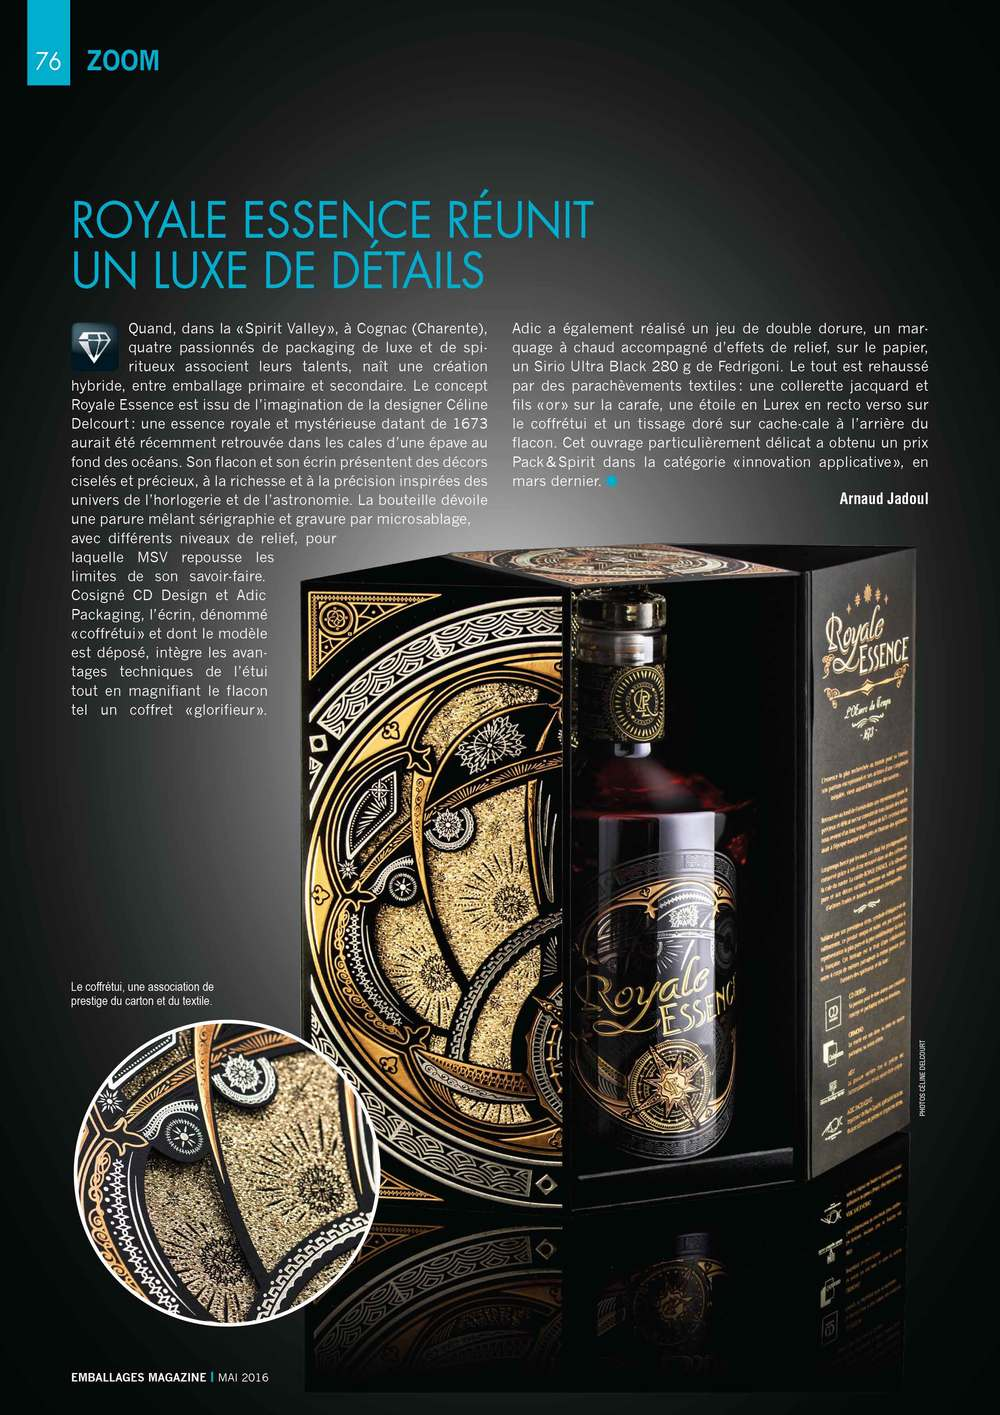 Article sur Emballages Magazine de ROYALE ESSENCE